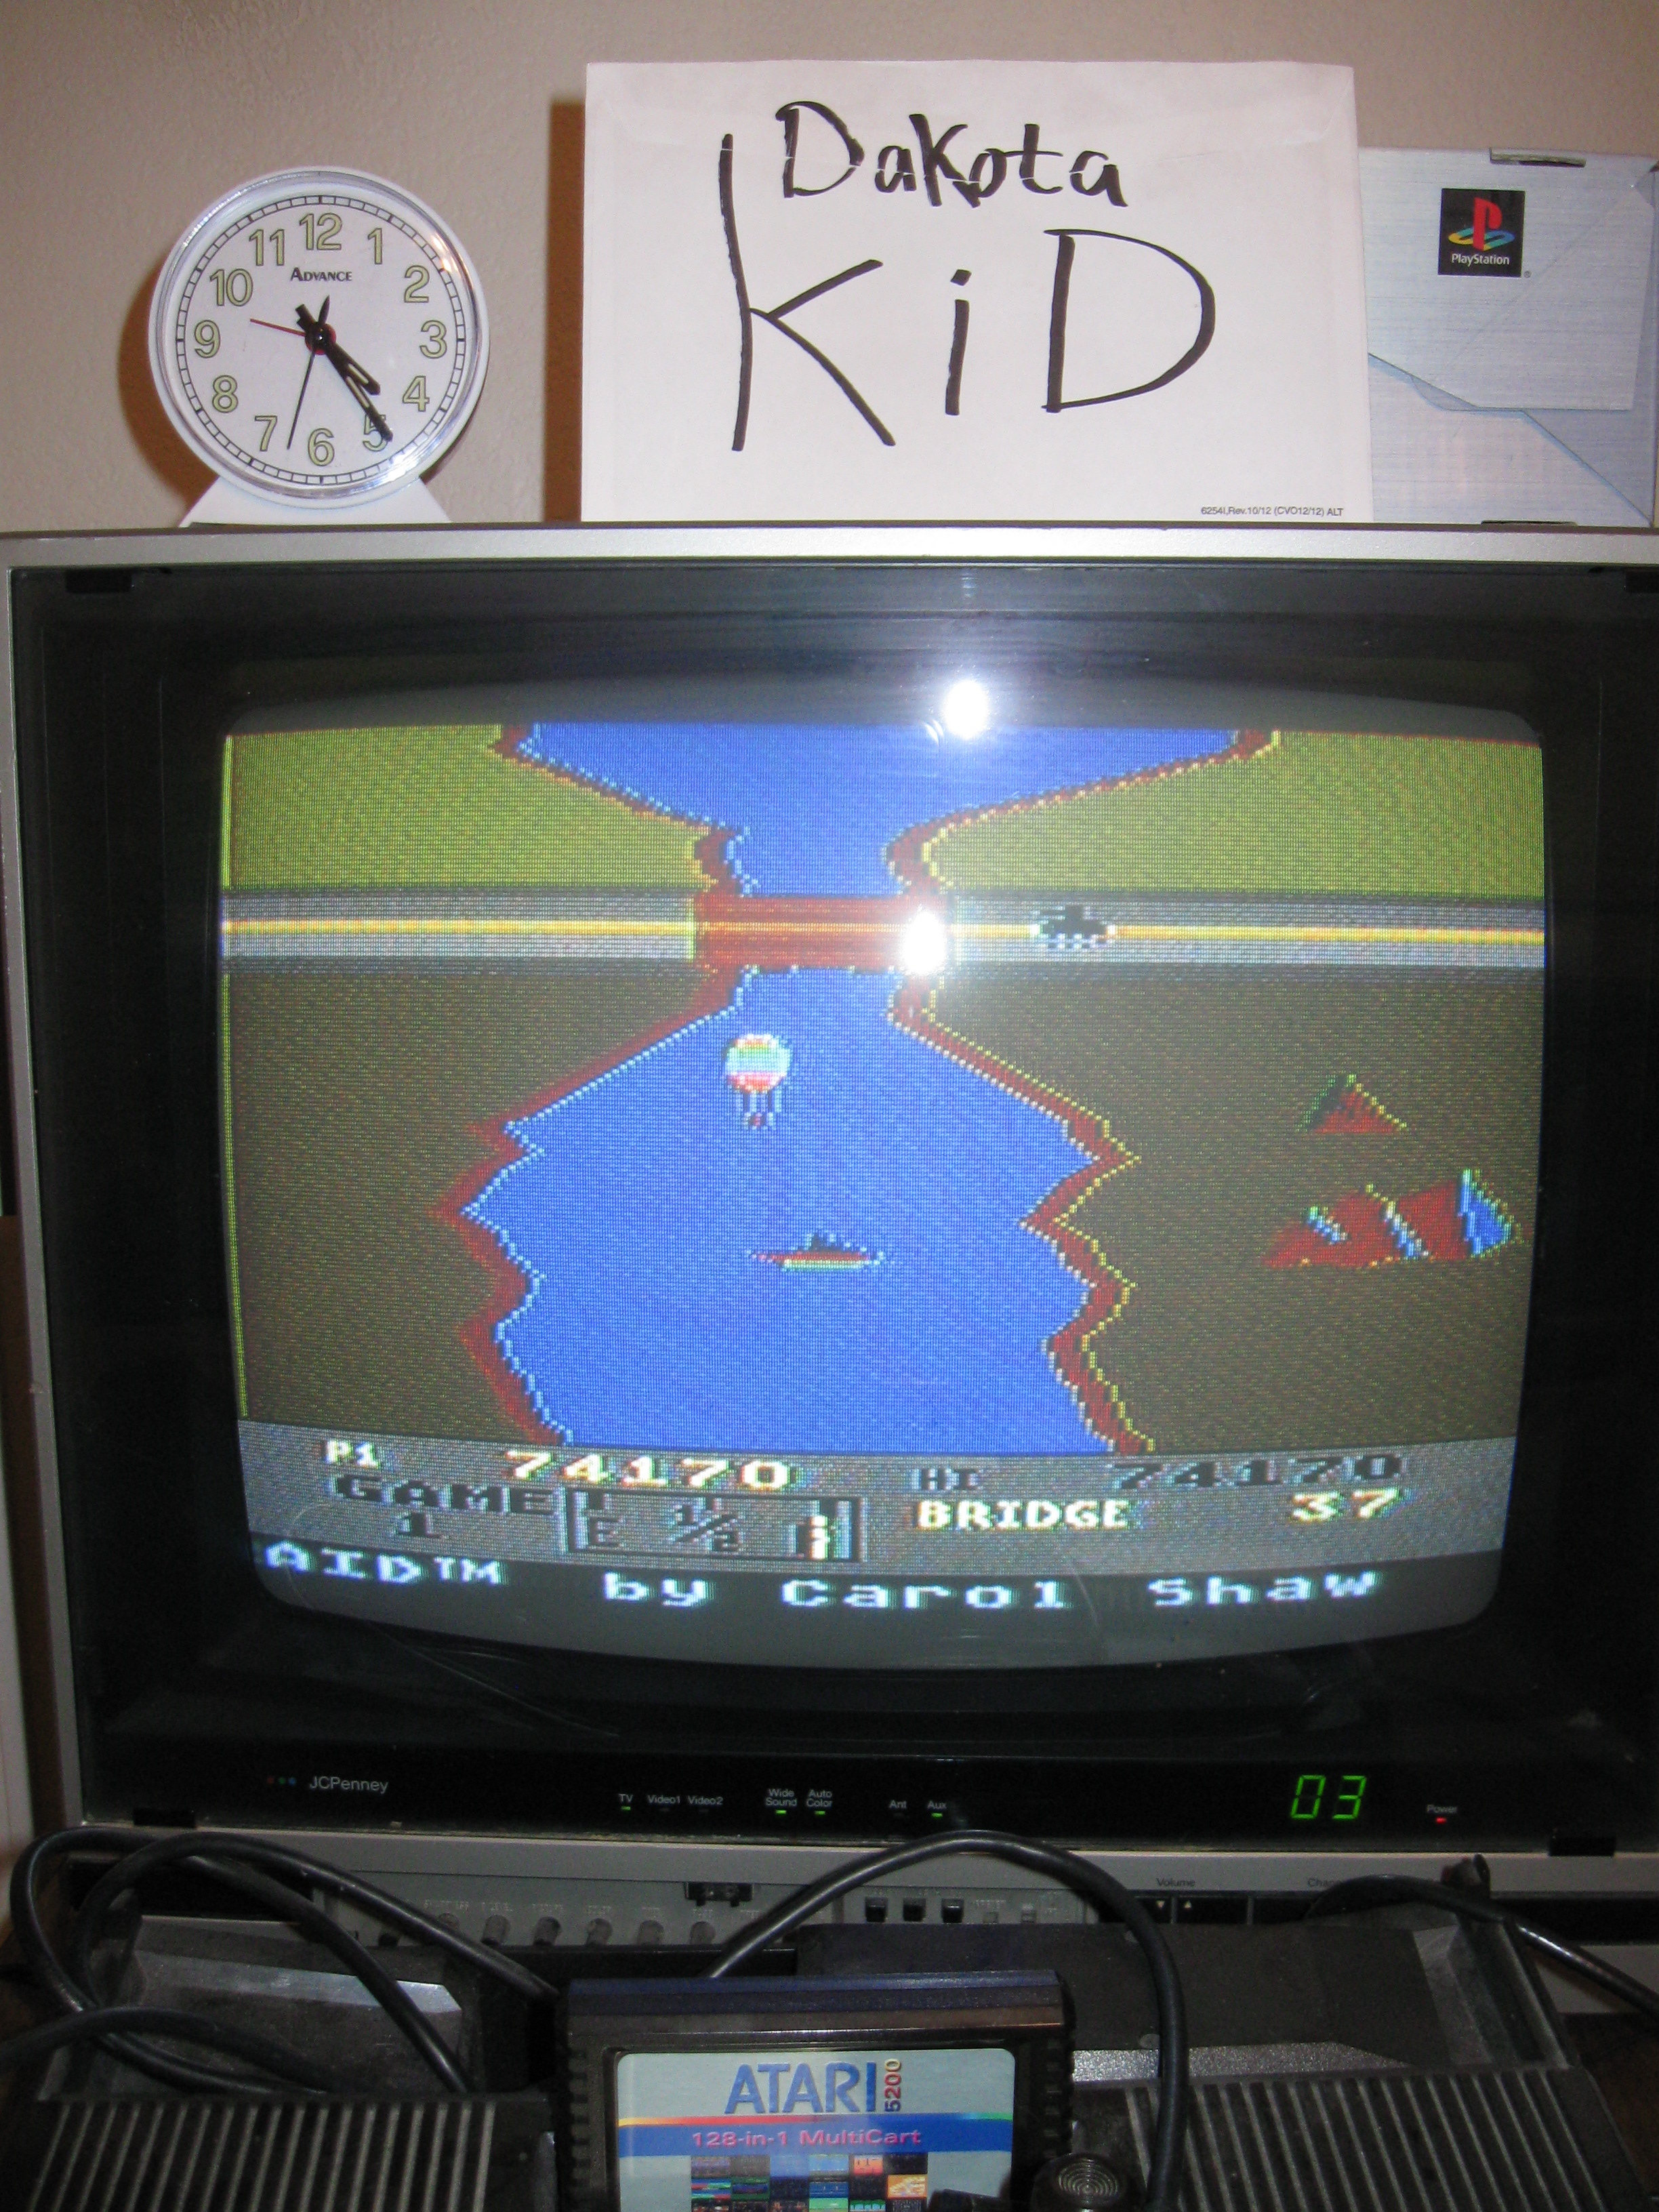 DakotaKid: River Raid: Game 1 (Atari 5200) 74,170 points on 2016-04-14 19:07:32